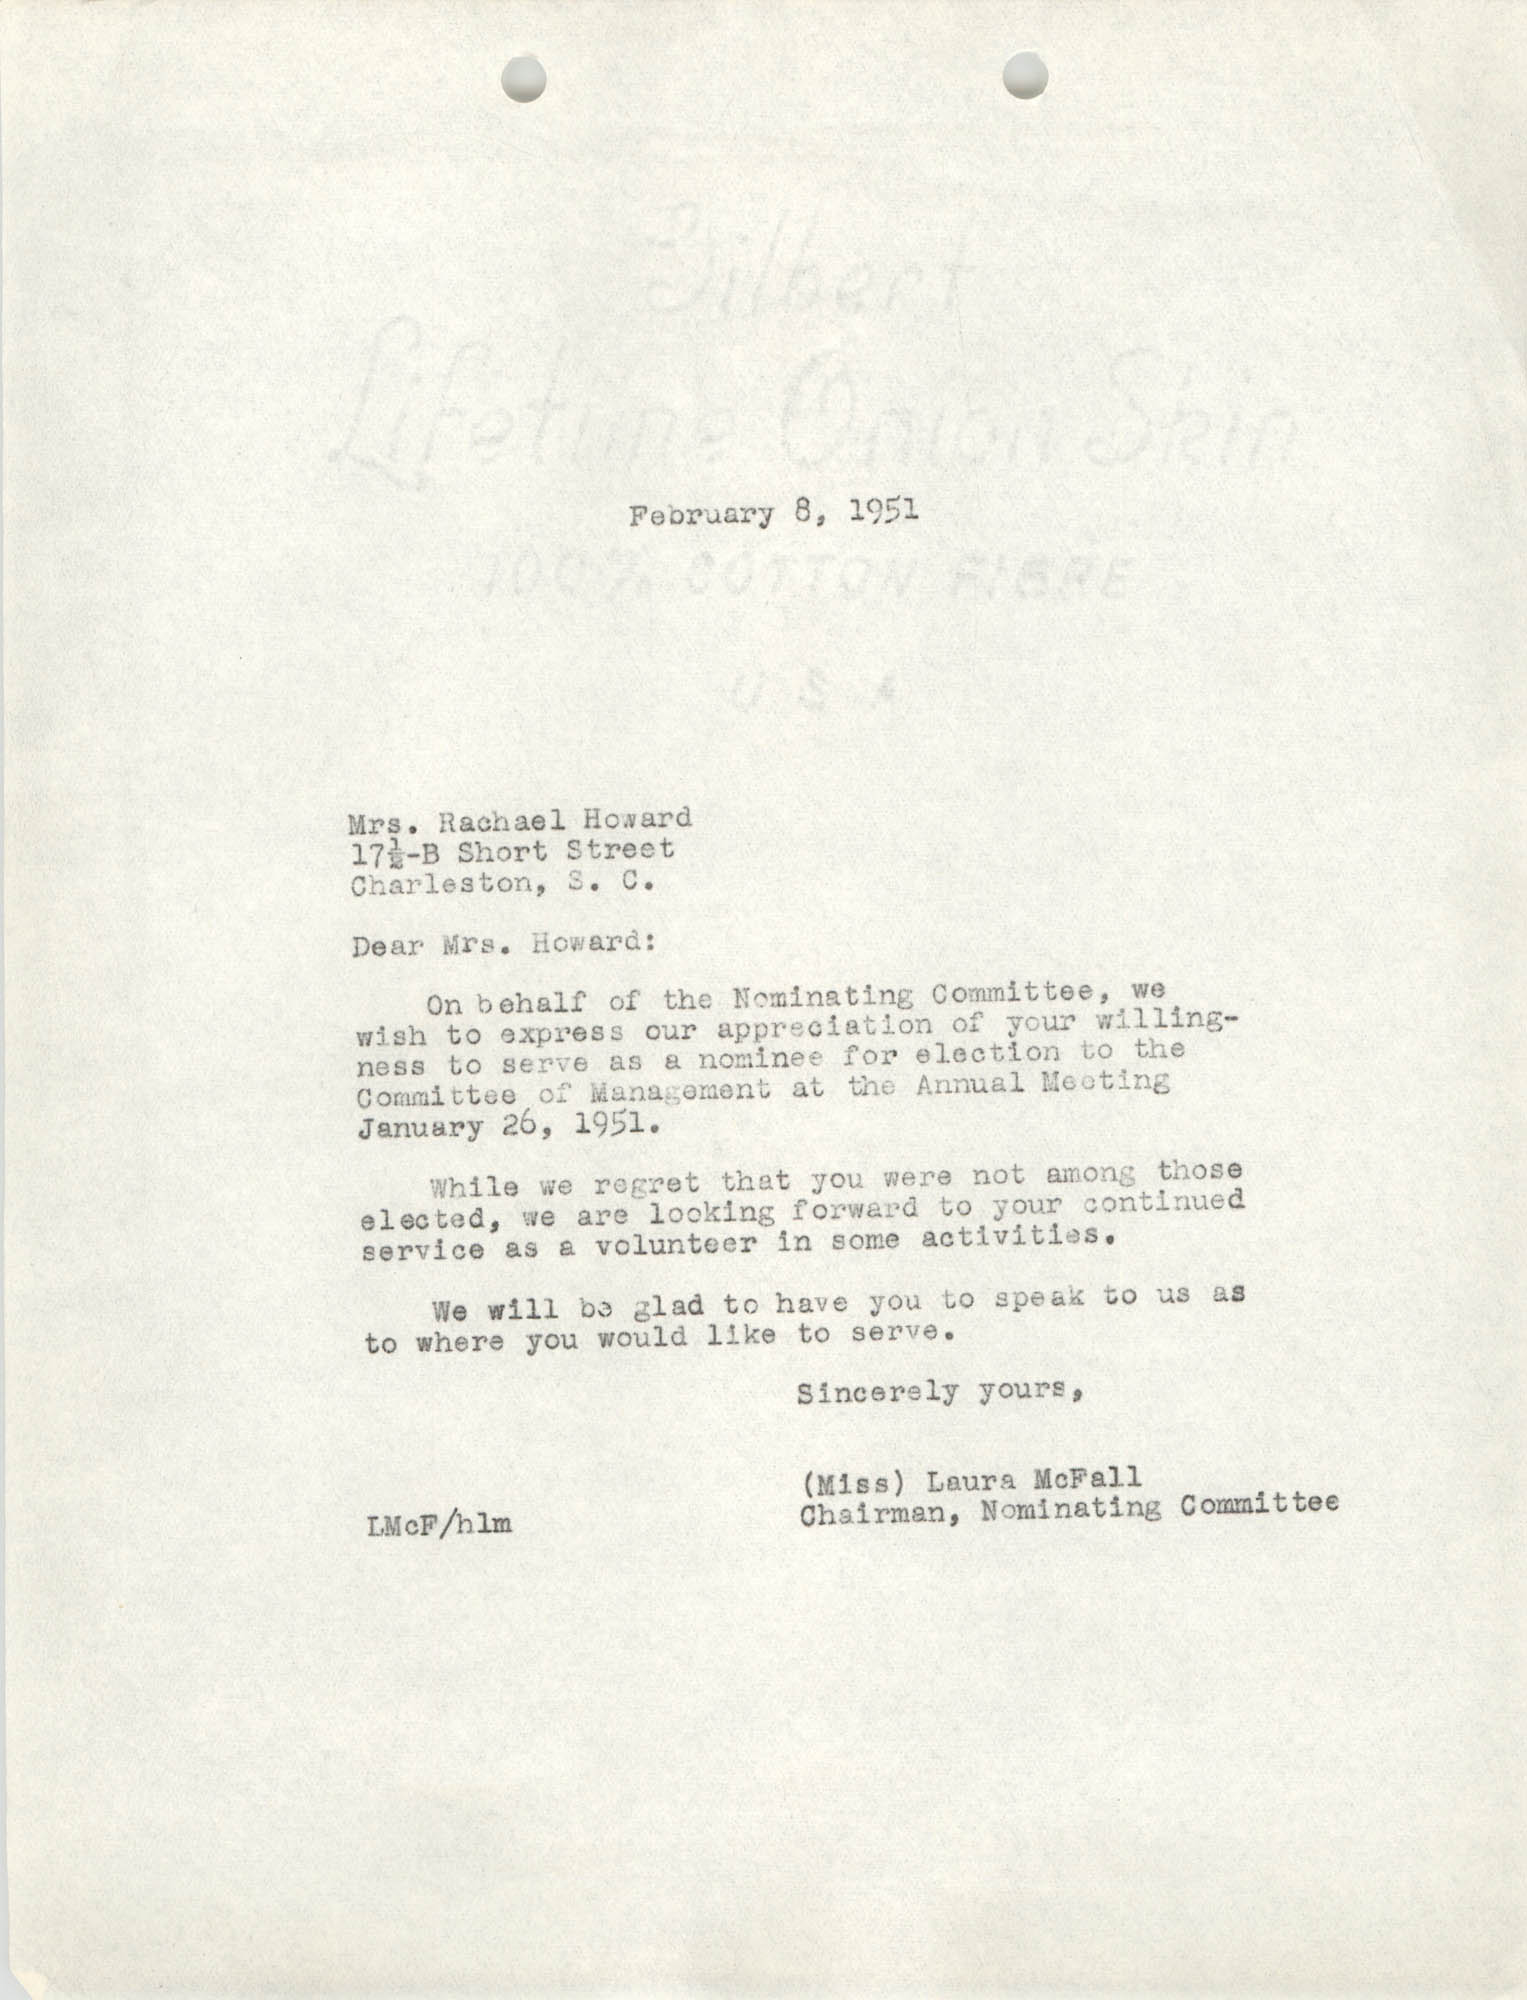 Letter from Laura McFall to Rachael Howard, February 8, 1951